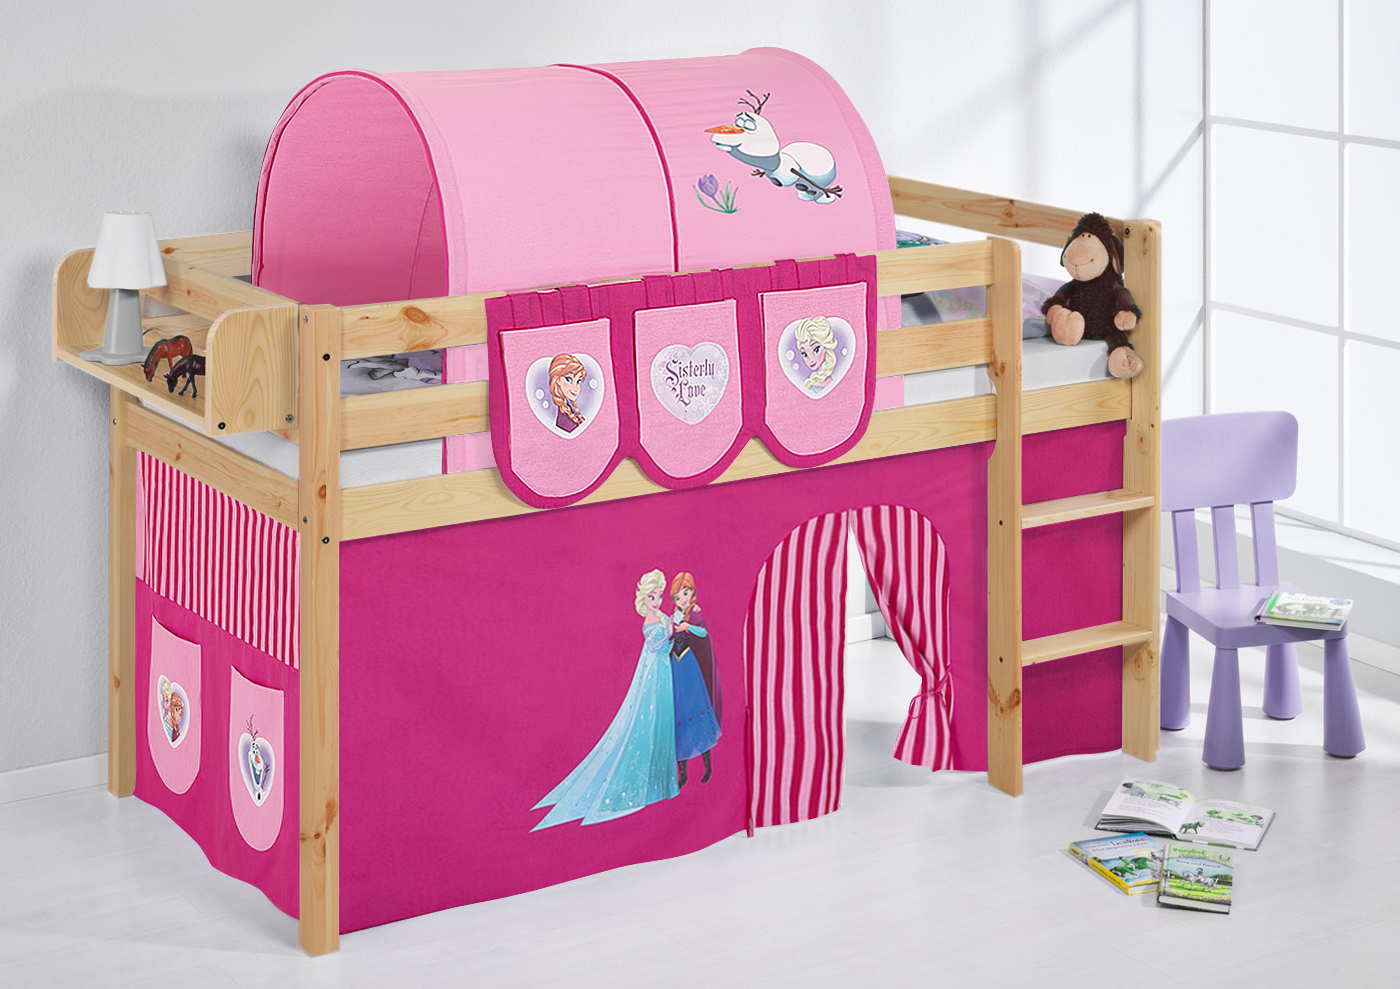 spielbett hochbett kinderbett kinder bett jelle natur vorhang ebay. Black Bedroom Furniture Sets. Home Design Ideas